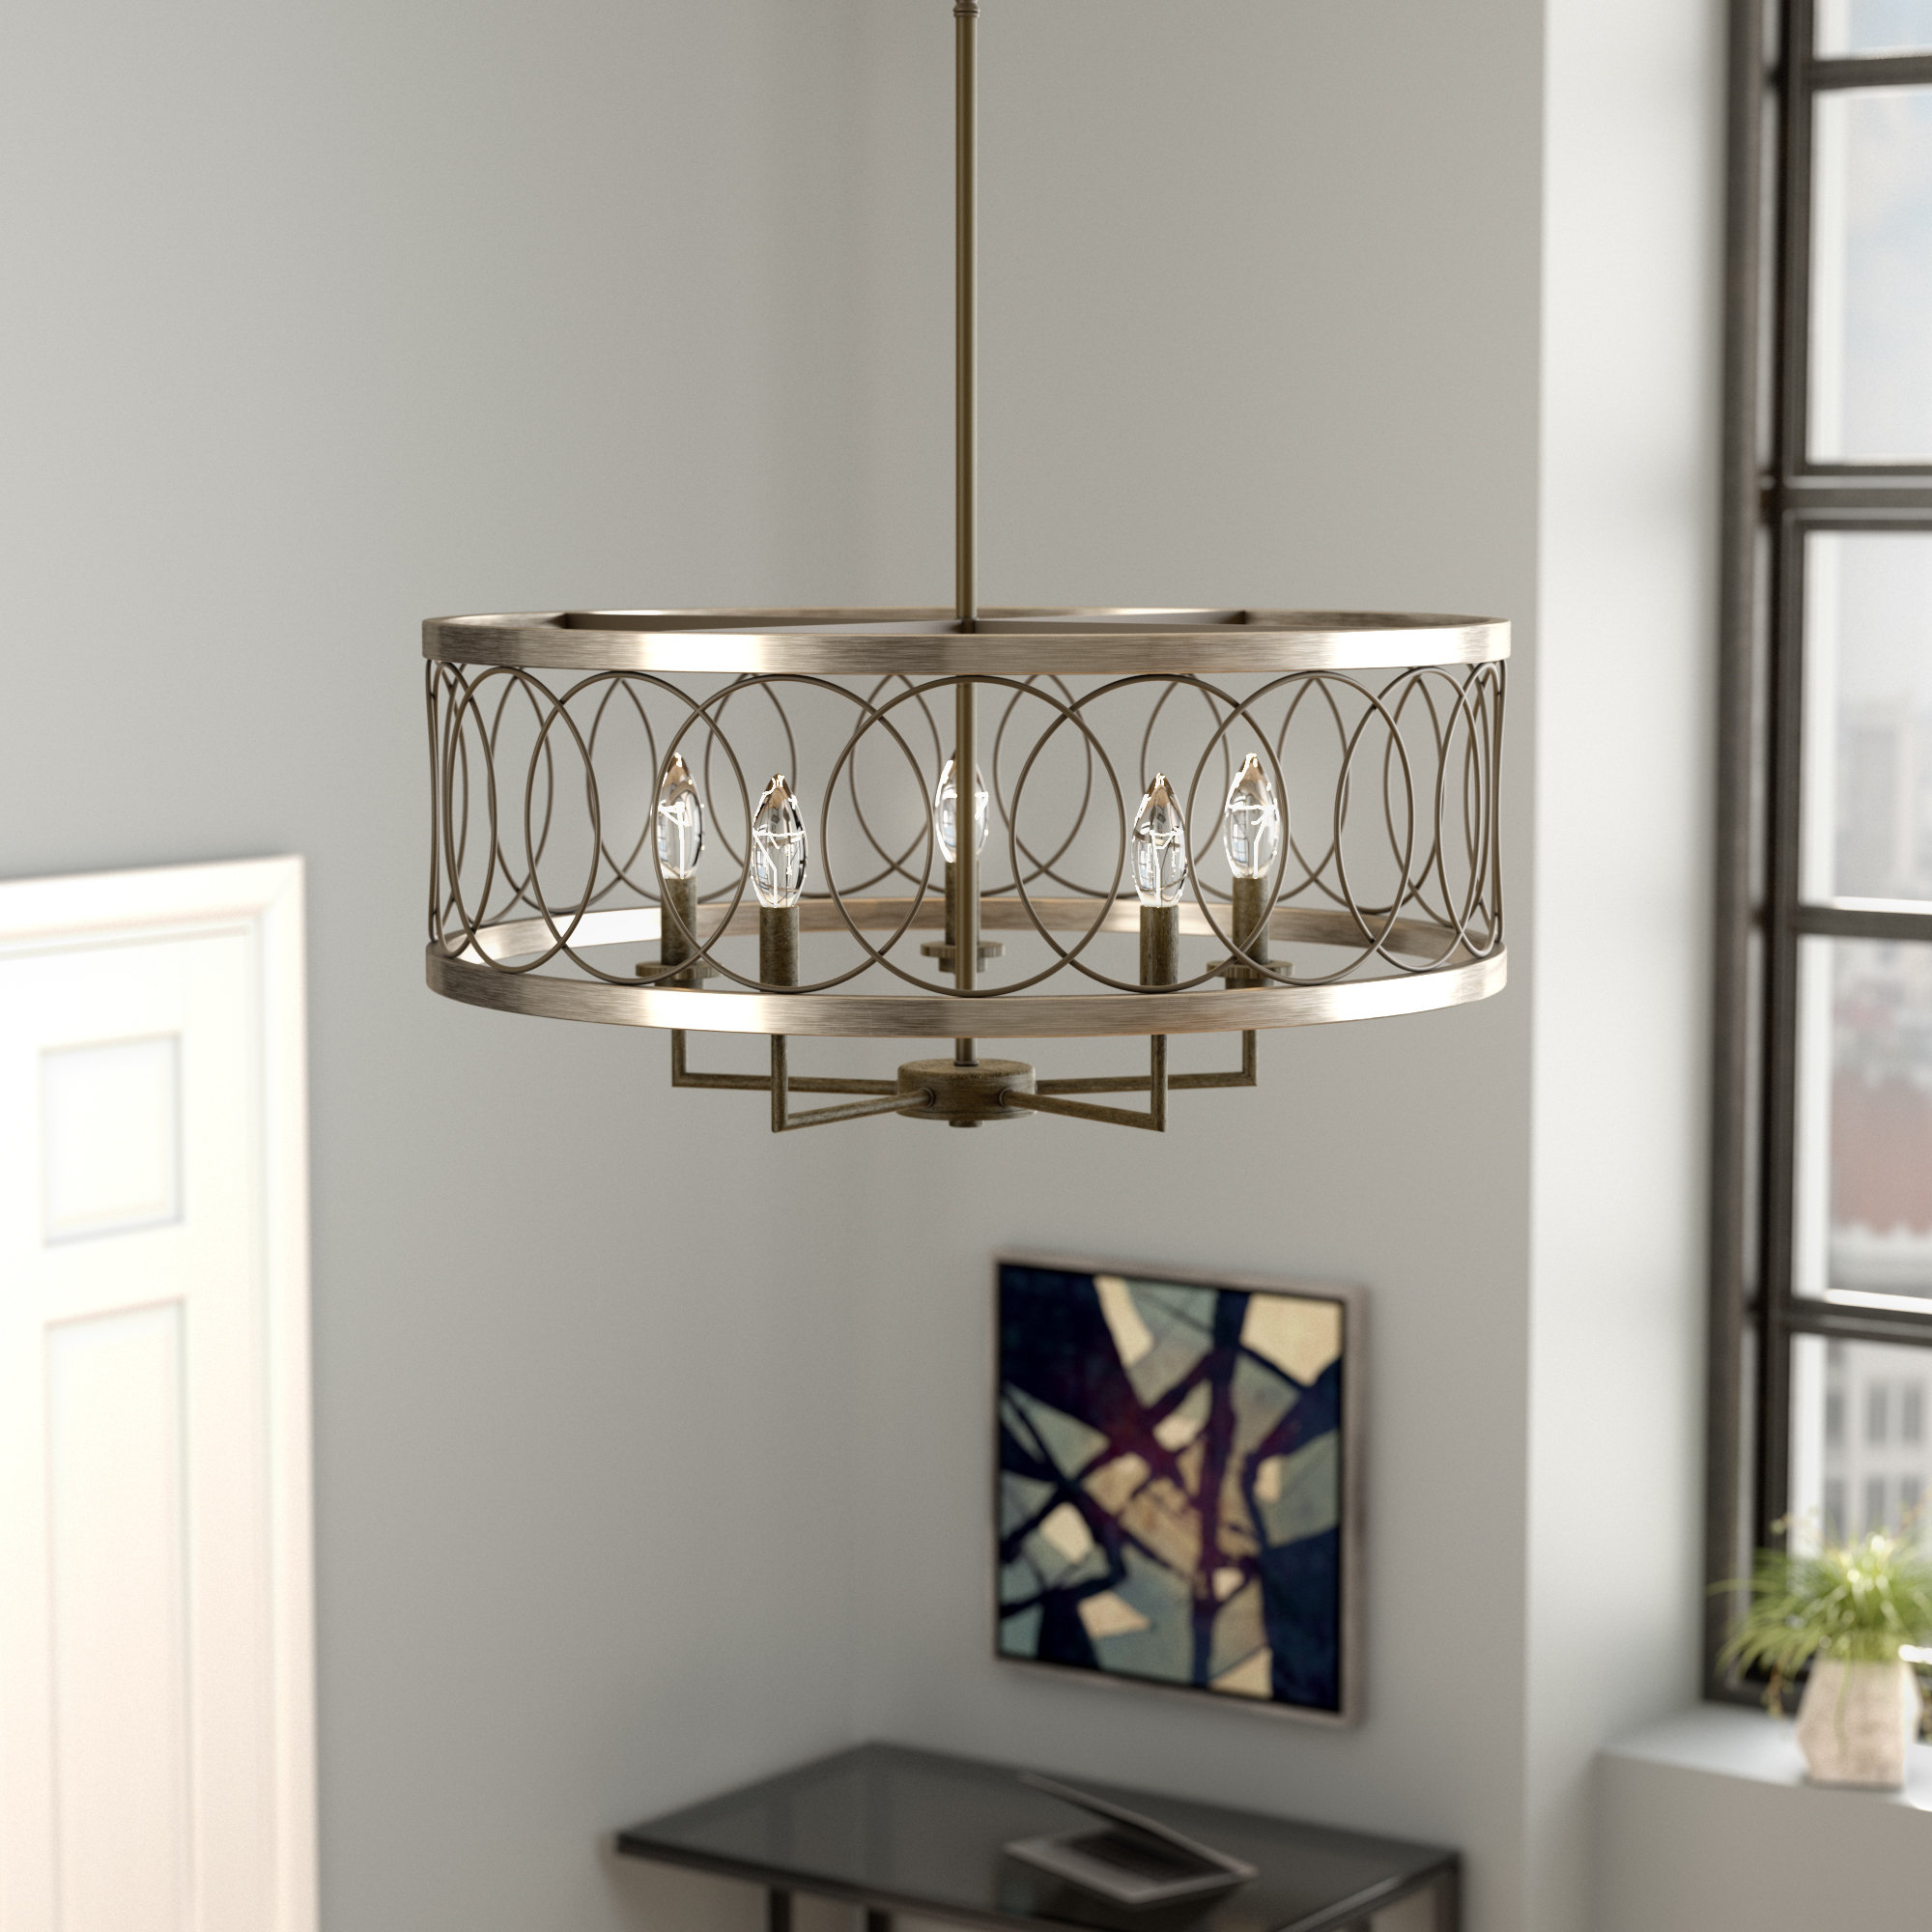 Widely Used Burton 5 Light Drum Chandeliers Throughout Cliffside 5 Light Drum Chandelier (View 9 of 20)